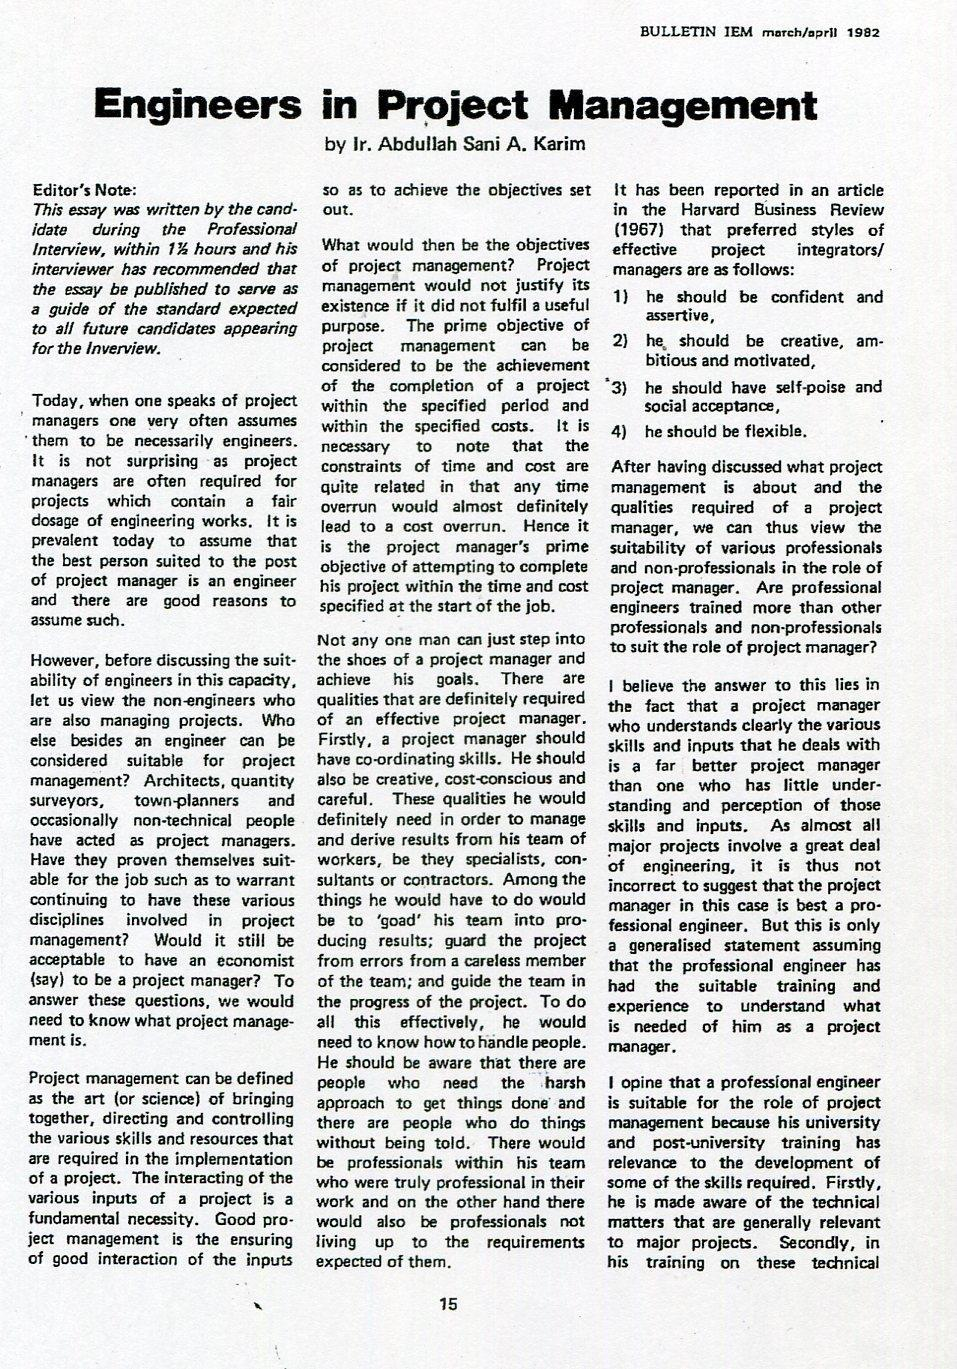 55a Jalan Ss22 19 Damansara Jaya Petaling Selangor Tel Parcel Makanan Pja 1606 57 Nota Bene Attached Is A Copy Of The Relevant Pages 1982 Institution Engineers Malaysia Iem Bulletin That Published My Professional Interview